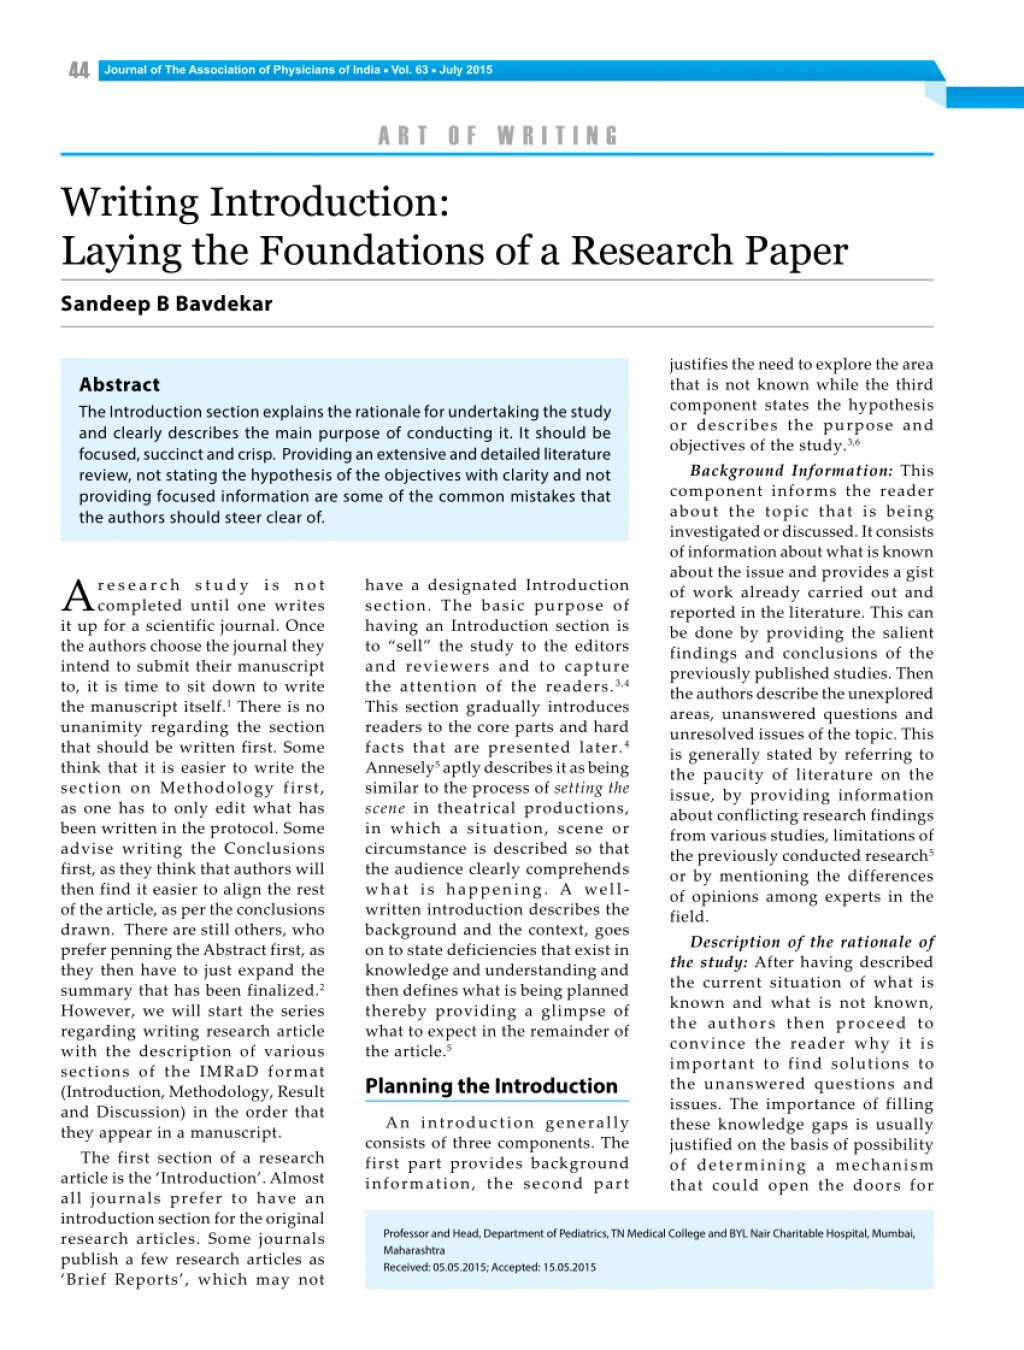 004 Example Of Introduction In Research Paper Unique Imrad Format About Smoking Cyberbullying Large